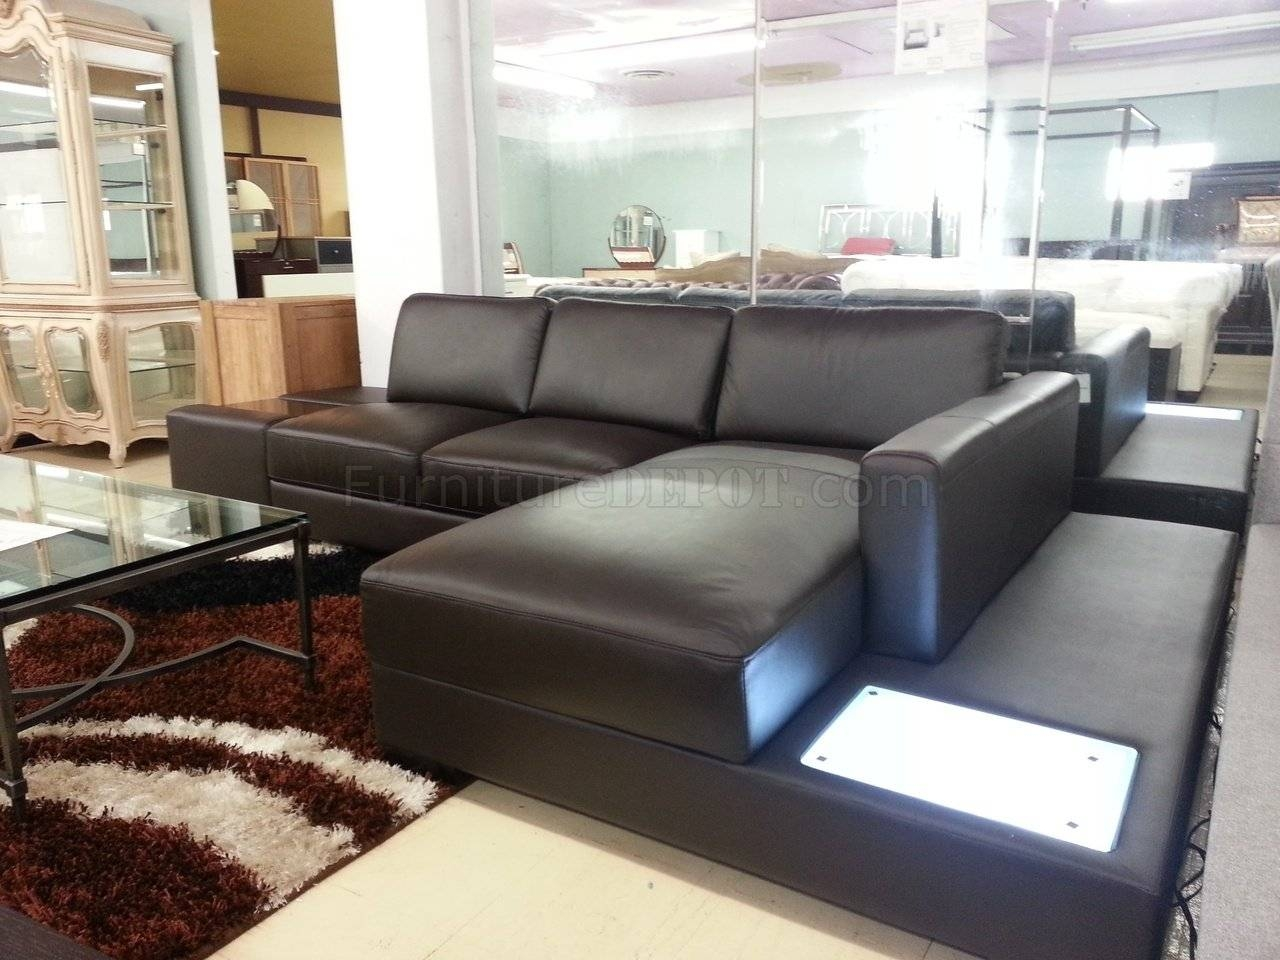 35 Mini Sectional Sofa In Off White Leather Within Mini Sectional Sofas (Photo 27 of 30)